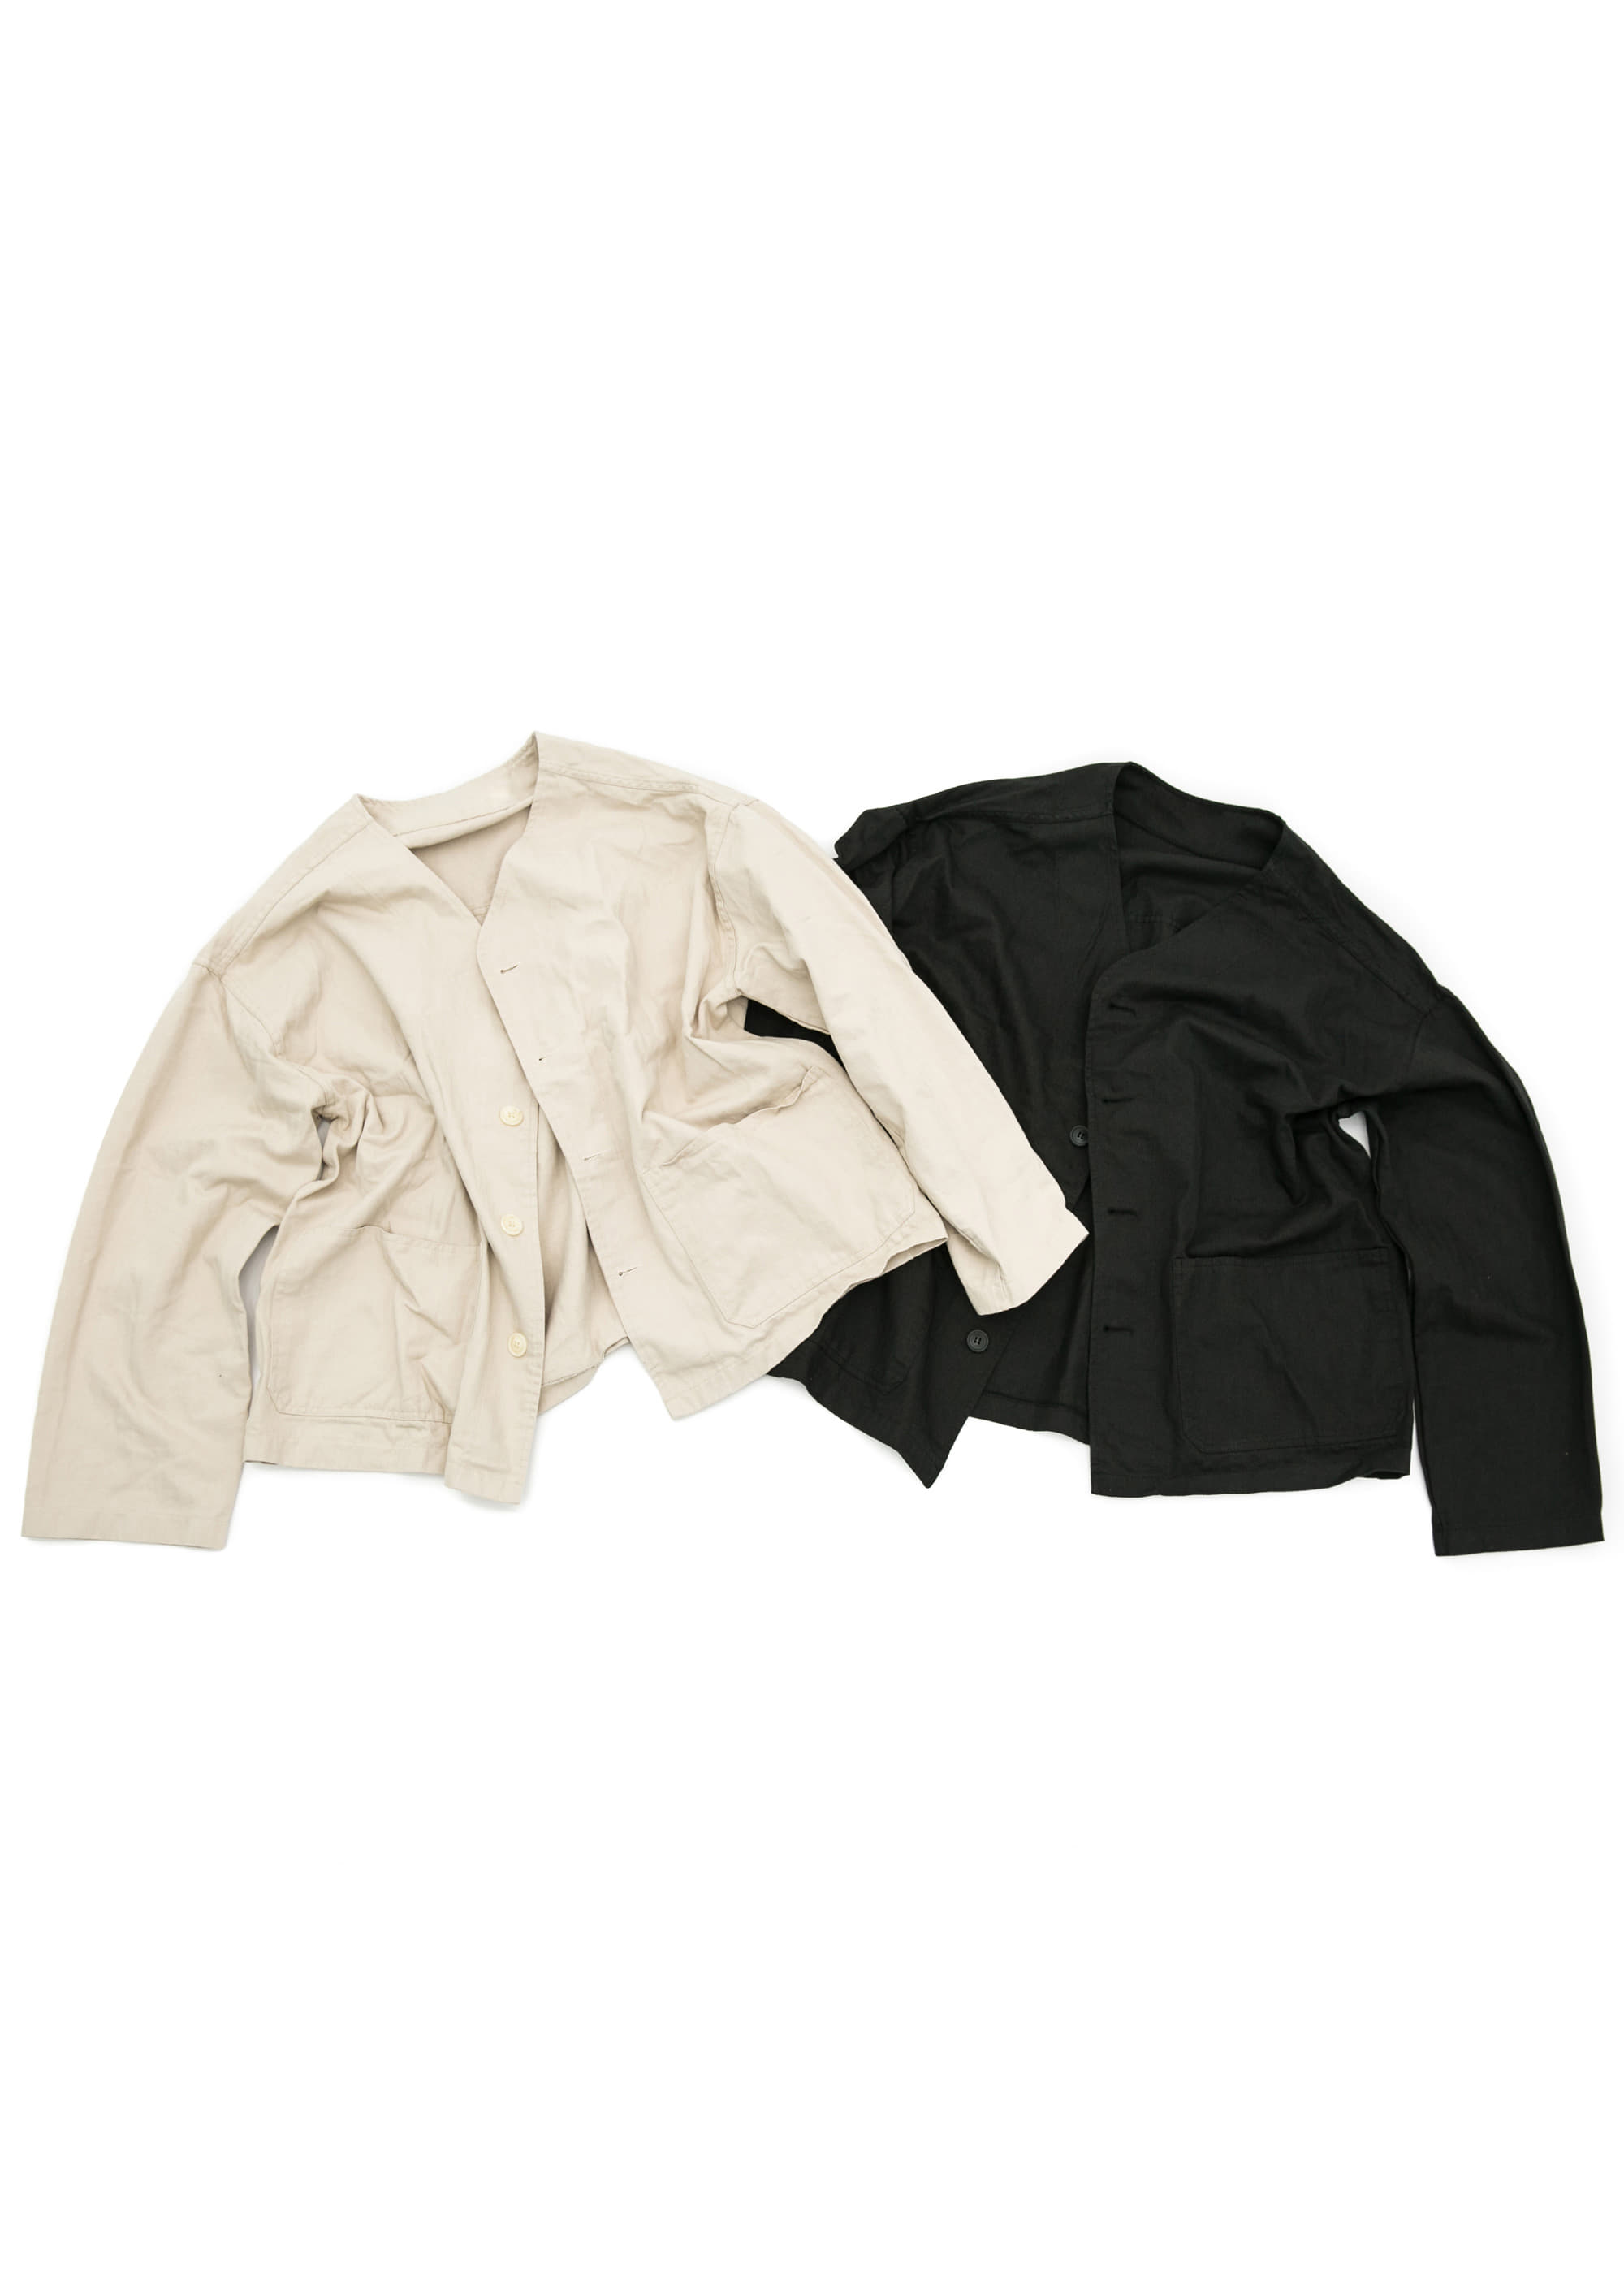 Non Collar Cotton Jacket - 2color